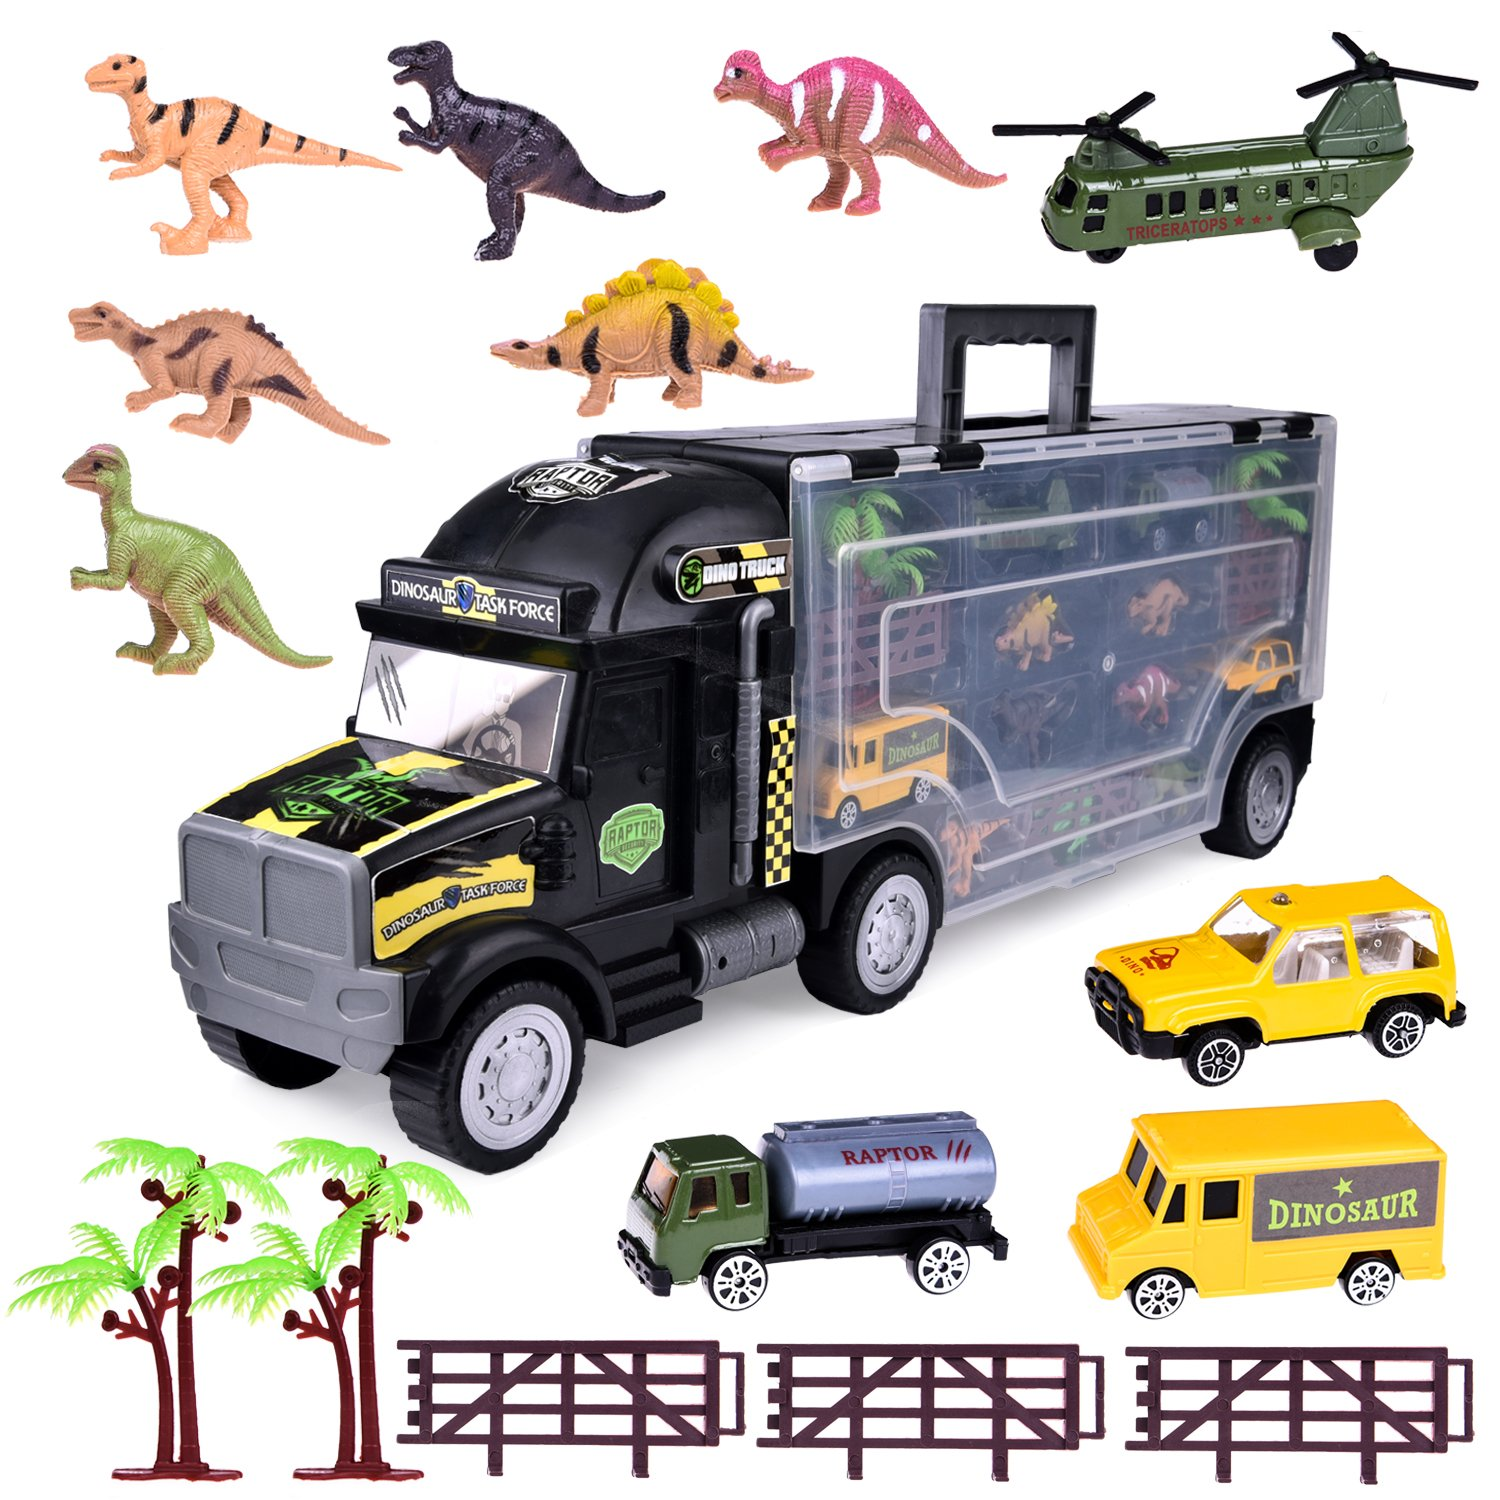 Dinosaur Toys Truck 22 Transport Car Carrier Truck with 6 Mini Dinosaur Figures, Diecast Cars, Airplane, Trees Fences ,Pake of 17 Pieces for Kids Gifts FUN LITTLE TOYS